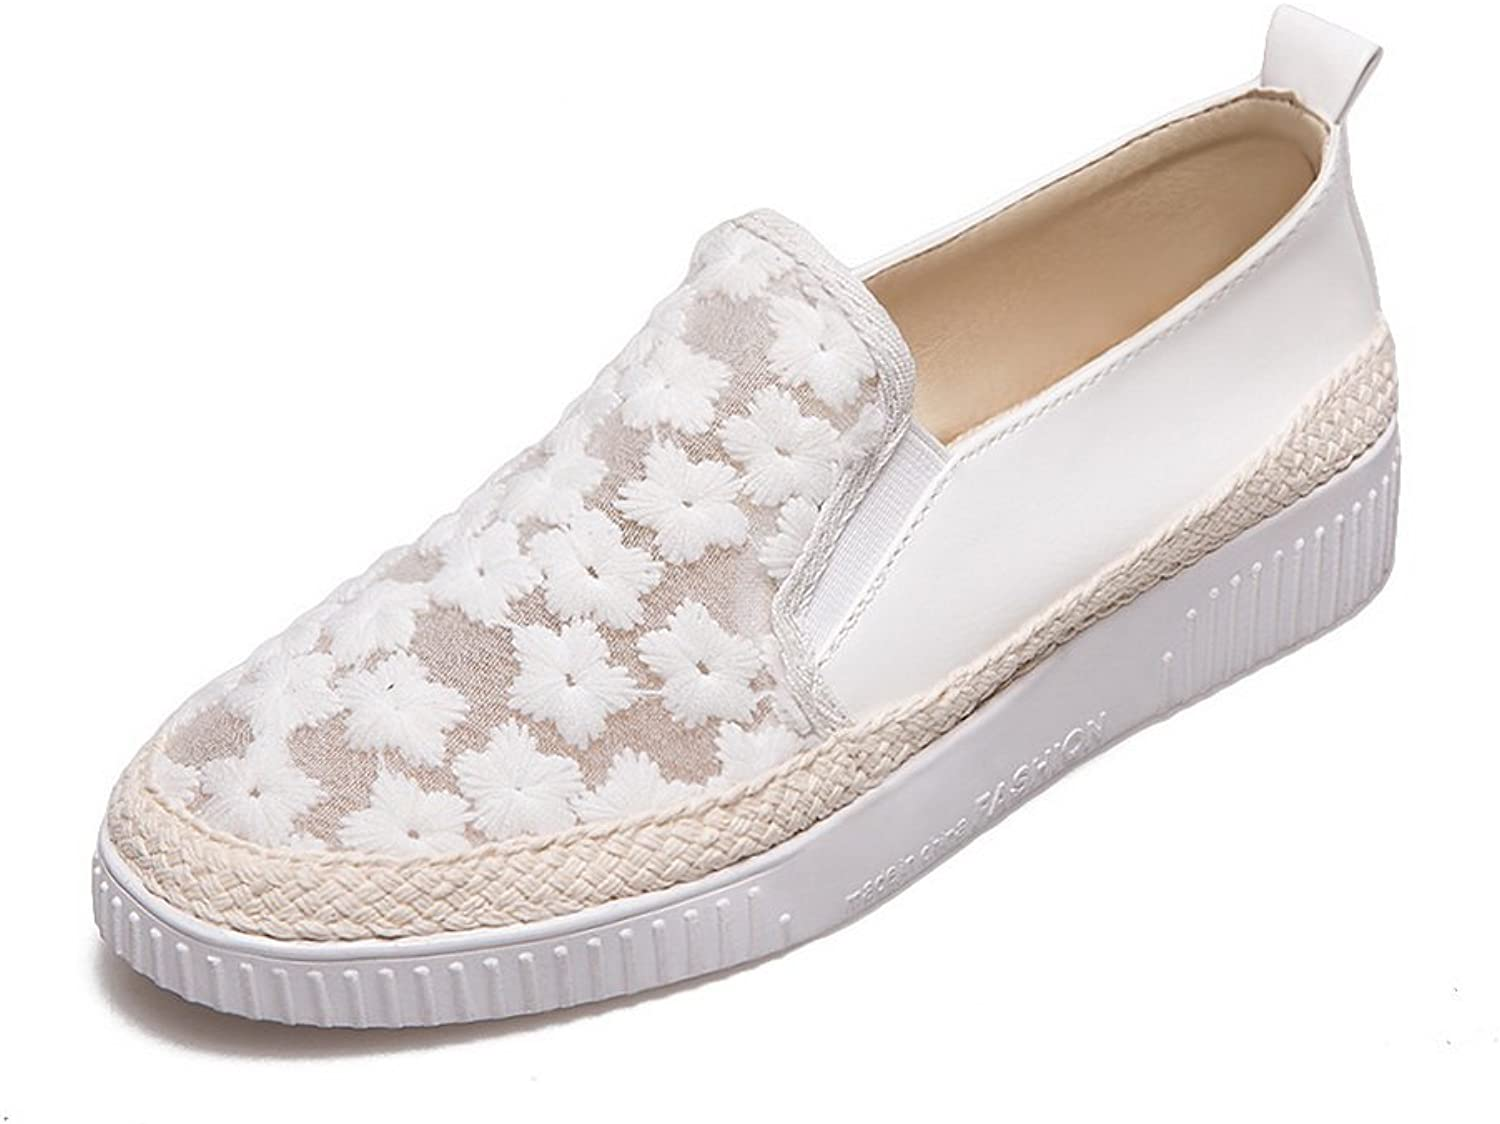 BalaMasa Ladies Hollow Out Square-Toe Platform Microfiber Flats shoes